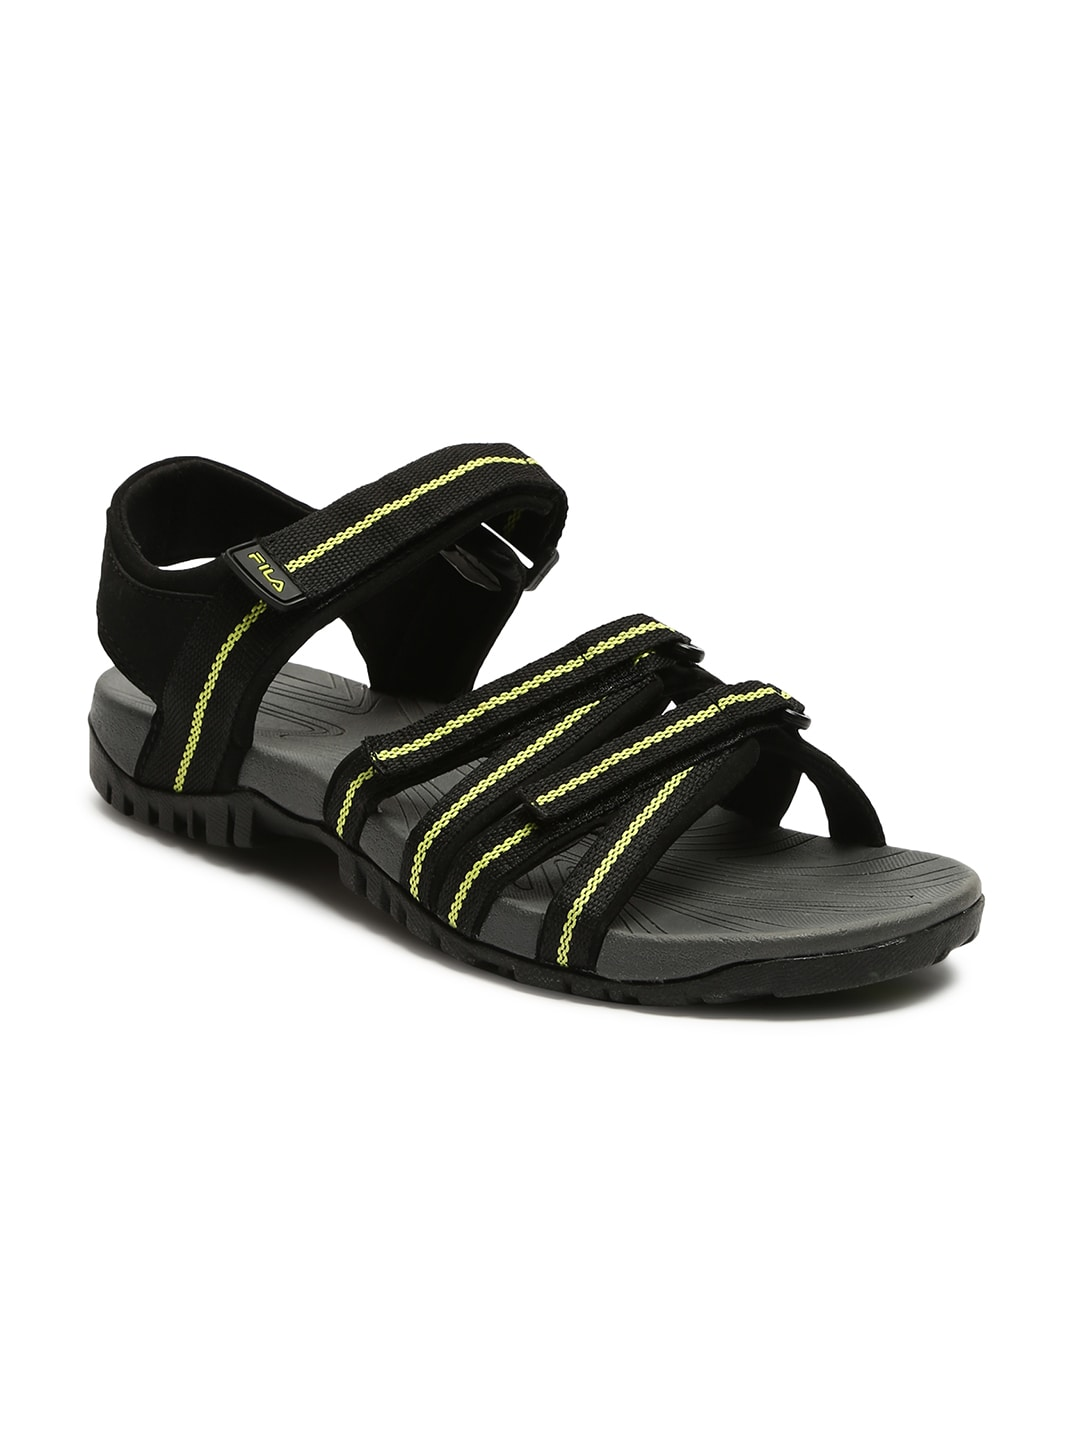 b19b1c5b27be Rubber Sandals - Buy Rubber Sandals online in India